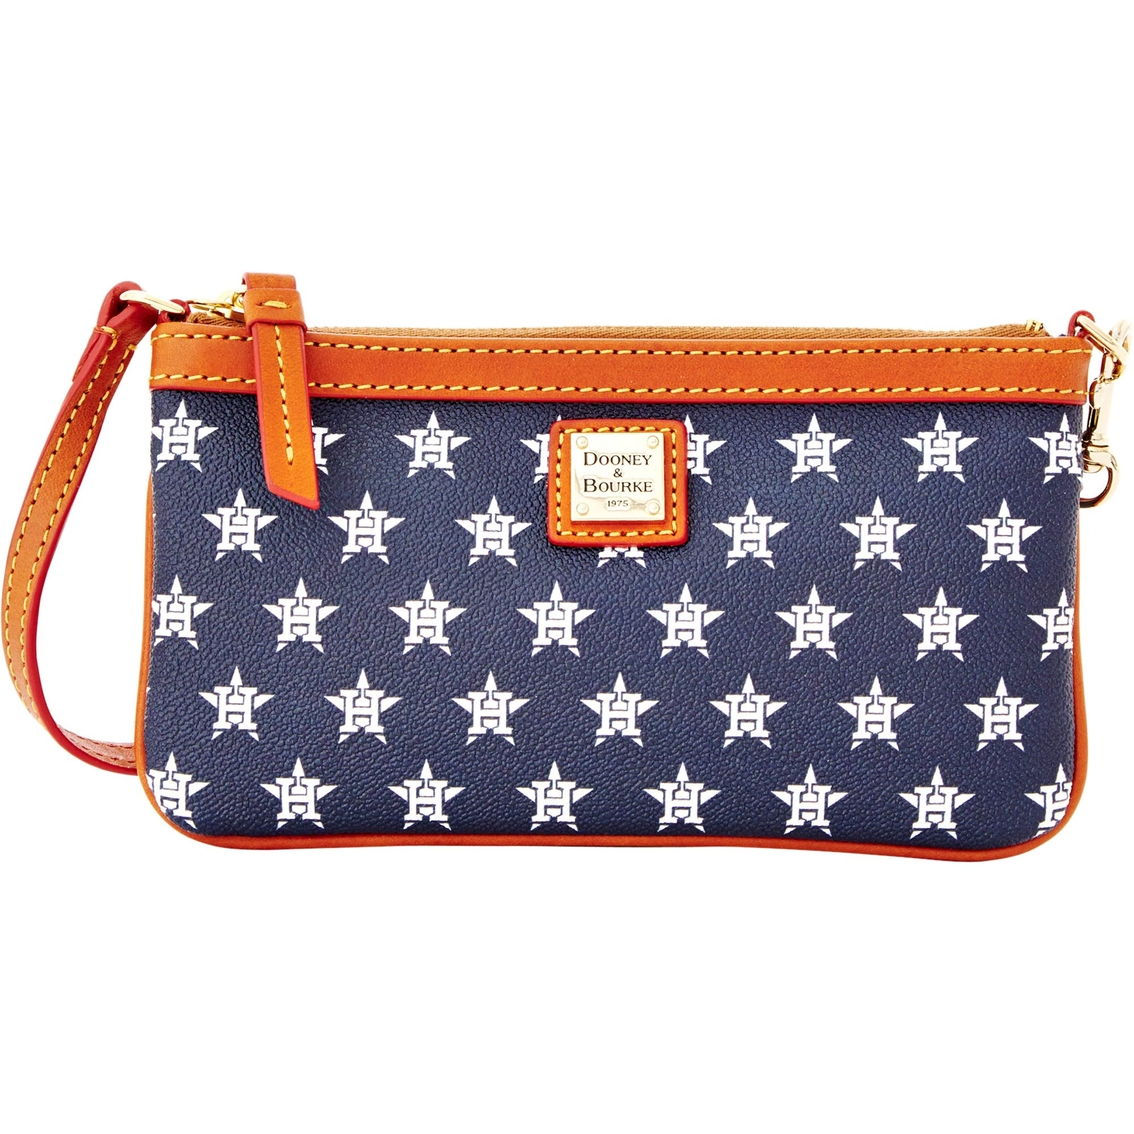 dooney and bourke astros